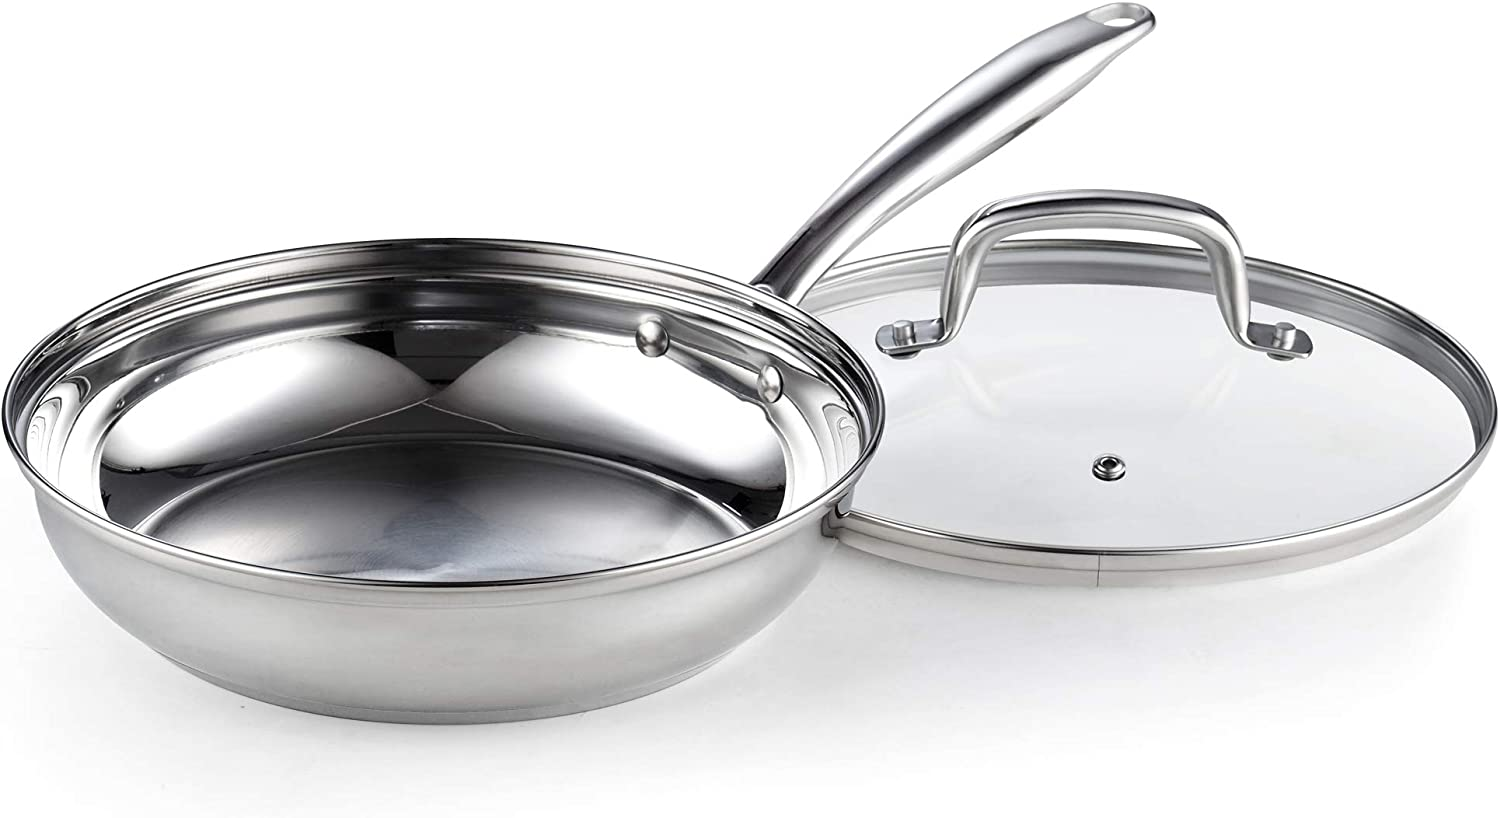 3-Quart 10-Inch Saute Pan Cook N Home 02610 Stainless Steel Fry Lid Silver